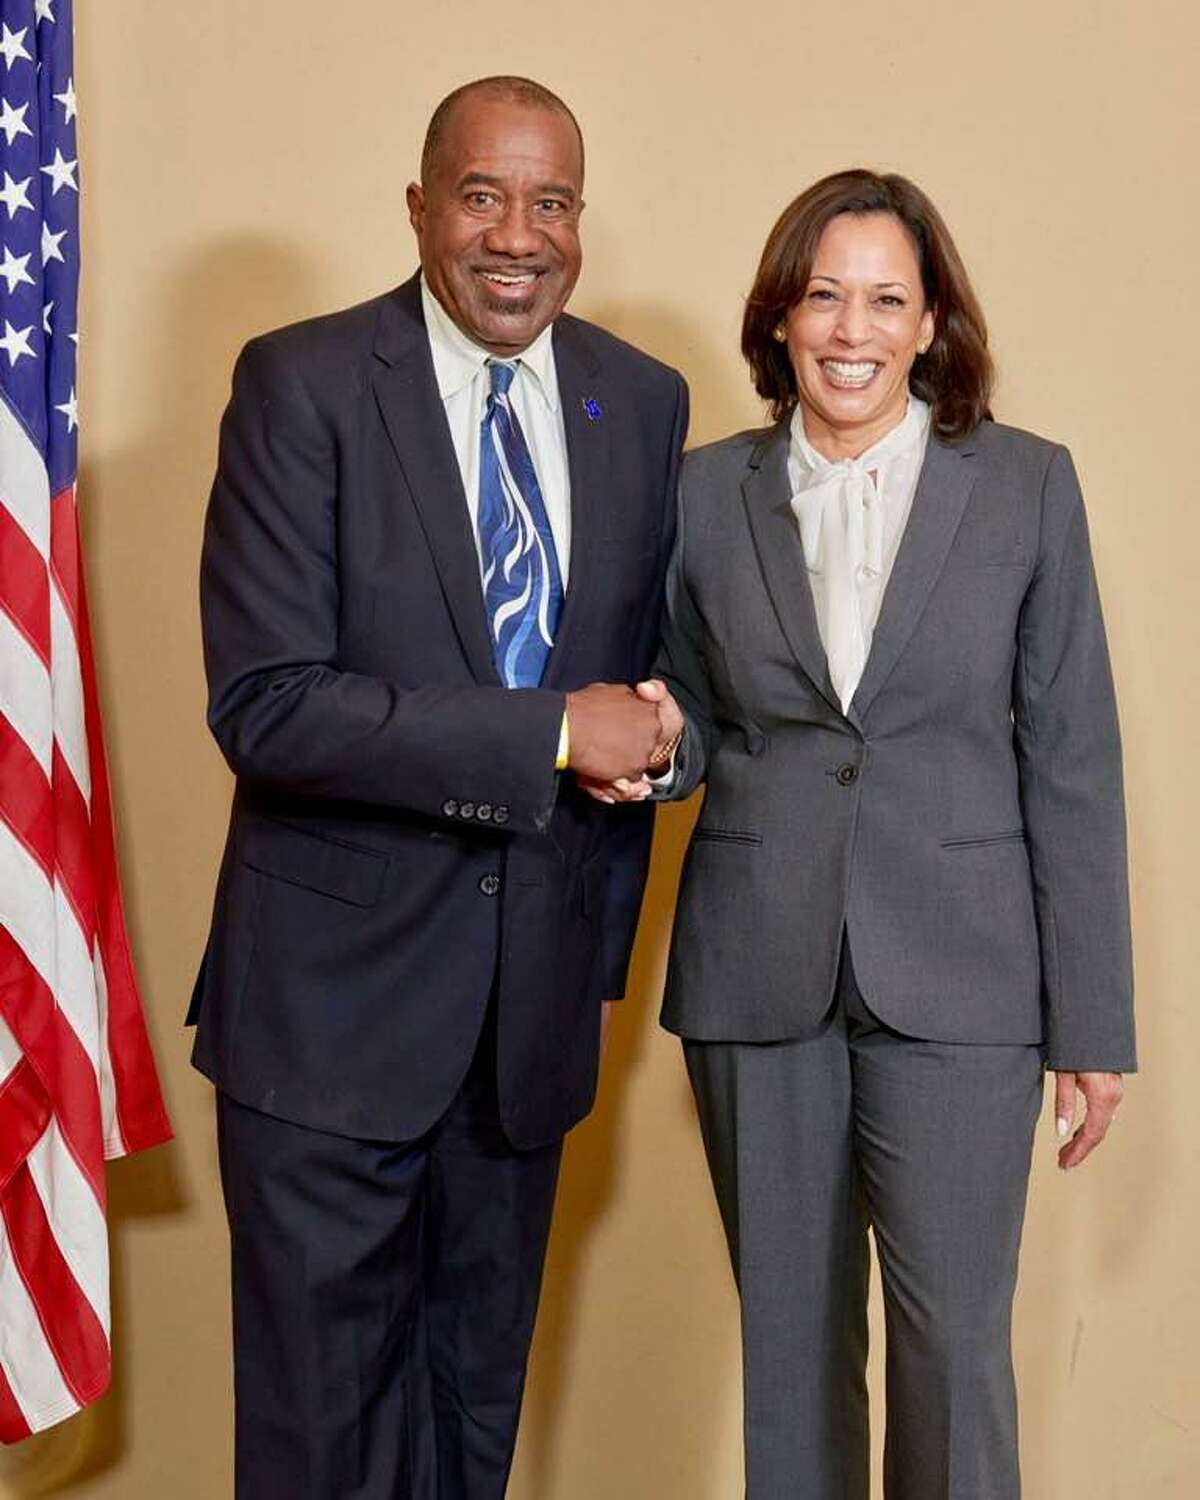 Rodney Griffin with then-Sen. Kamala Harris at the third debate in the Democratic presidential primary at Texas Southern University.